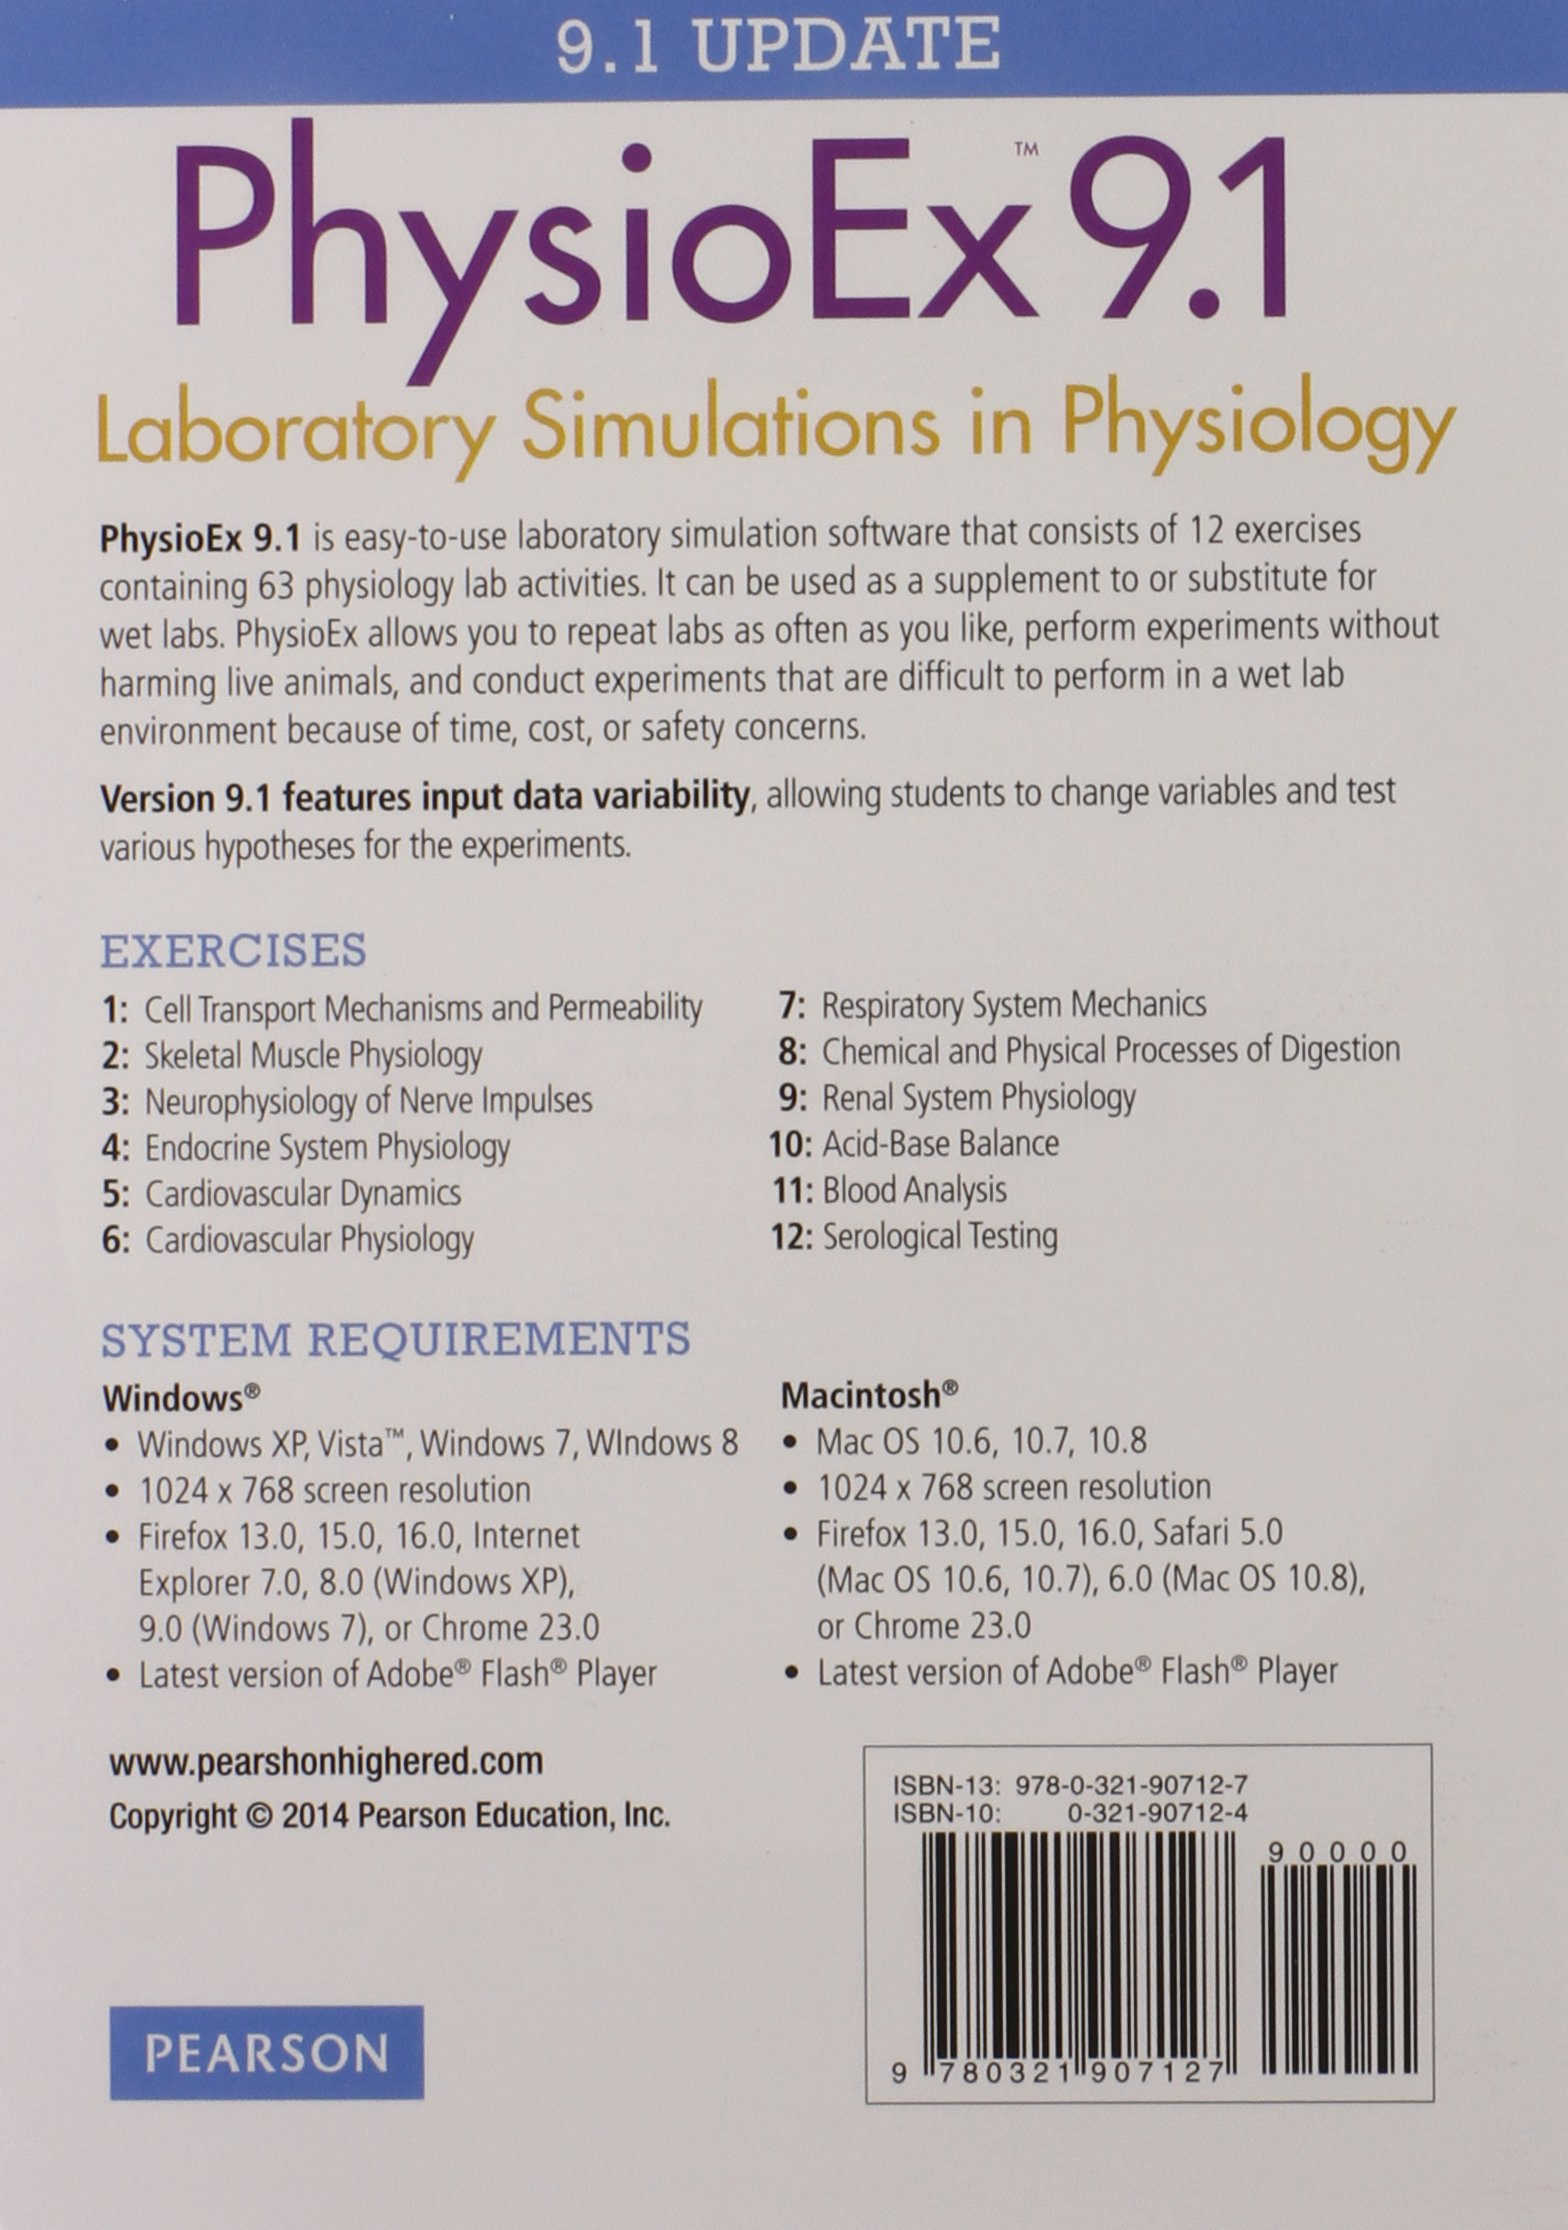 PhysioEx 9.1 CD-ROM (Integrated Component): Peter Zao, Timothy N. Stabler,  Lori A. Smith, Andrew Lokuta, Edwin Griff: 9780321907127: Amazon.com: Books